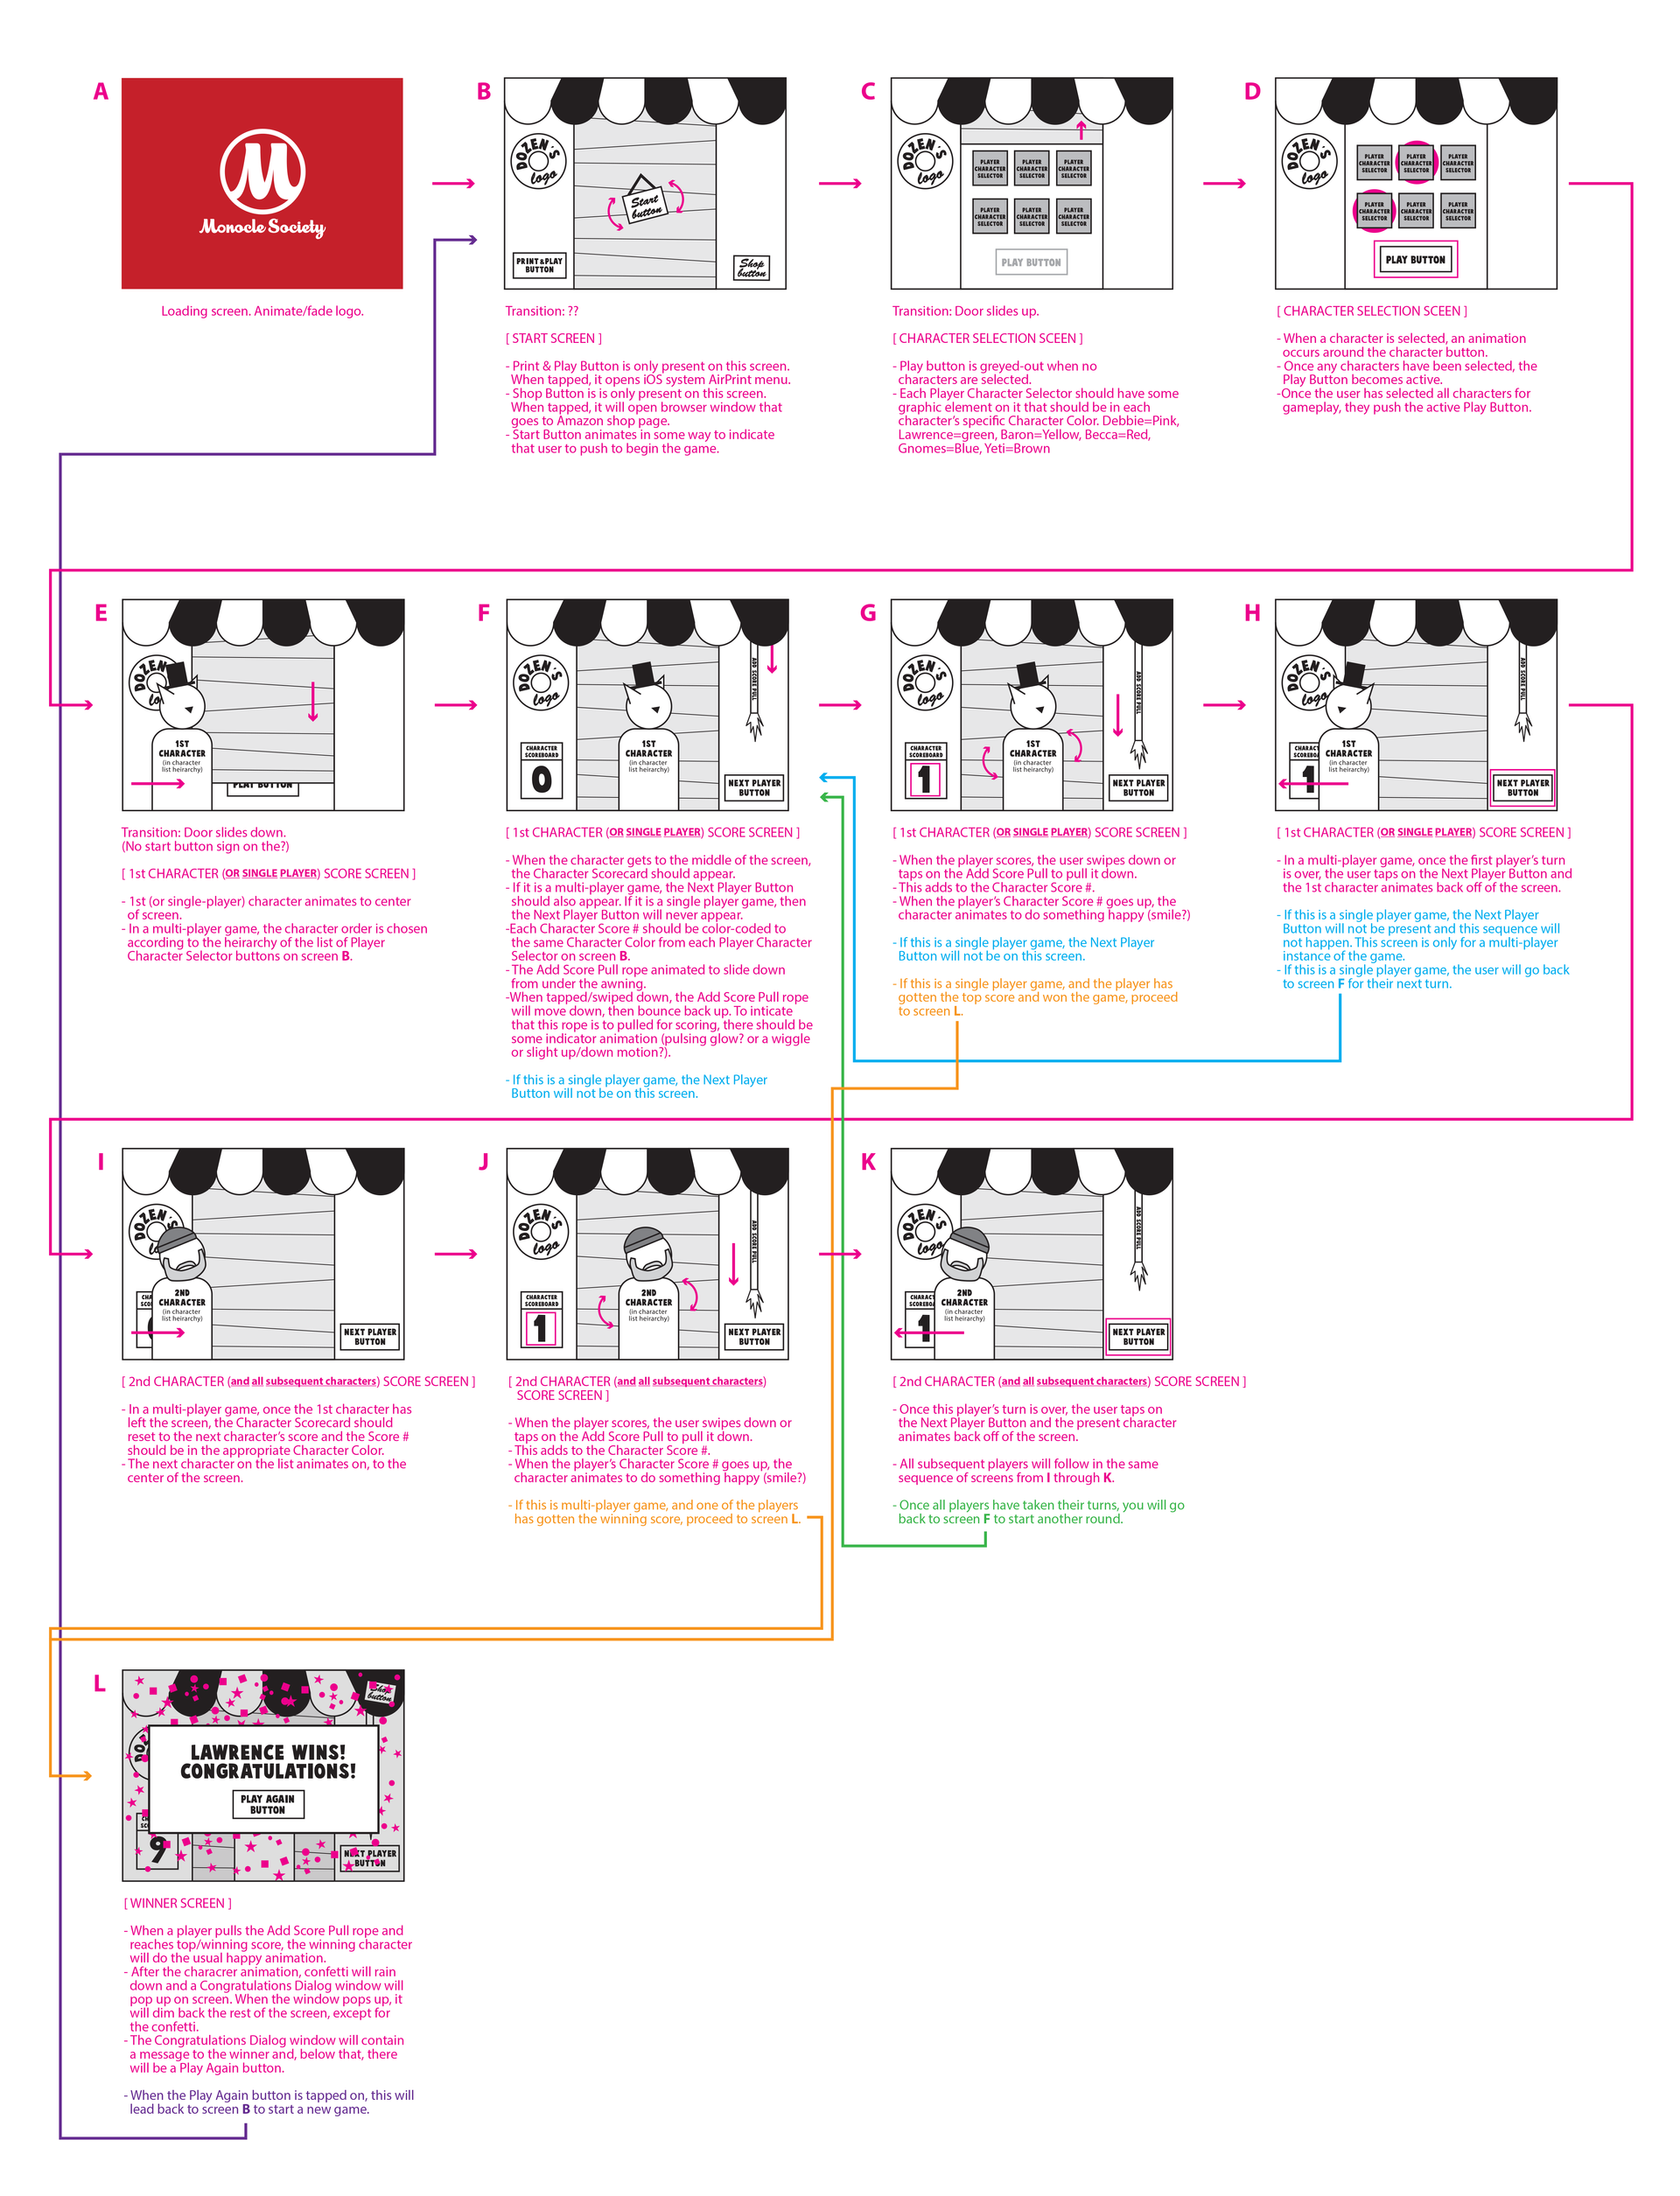 App UX Map & UI Wireframe